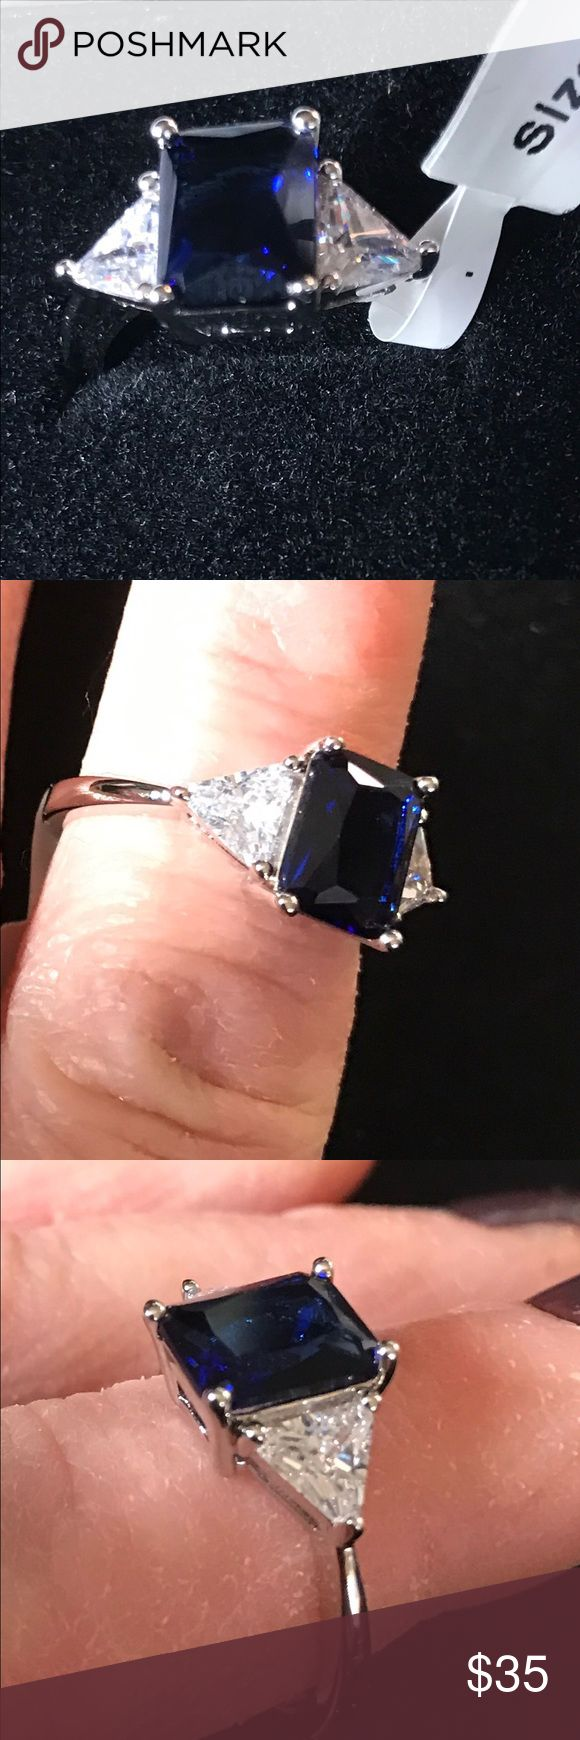 WGP size 7 blue radiant CZ White Gold Plated Classic Engagement Ring With 4.5ct Blue Radiant Cut And Trillion Cut Cubic Zirconia In A Prong Setting In Silvertone Jewelry Rings